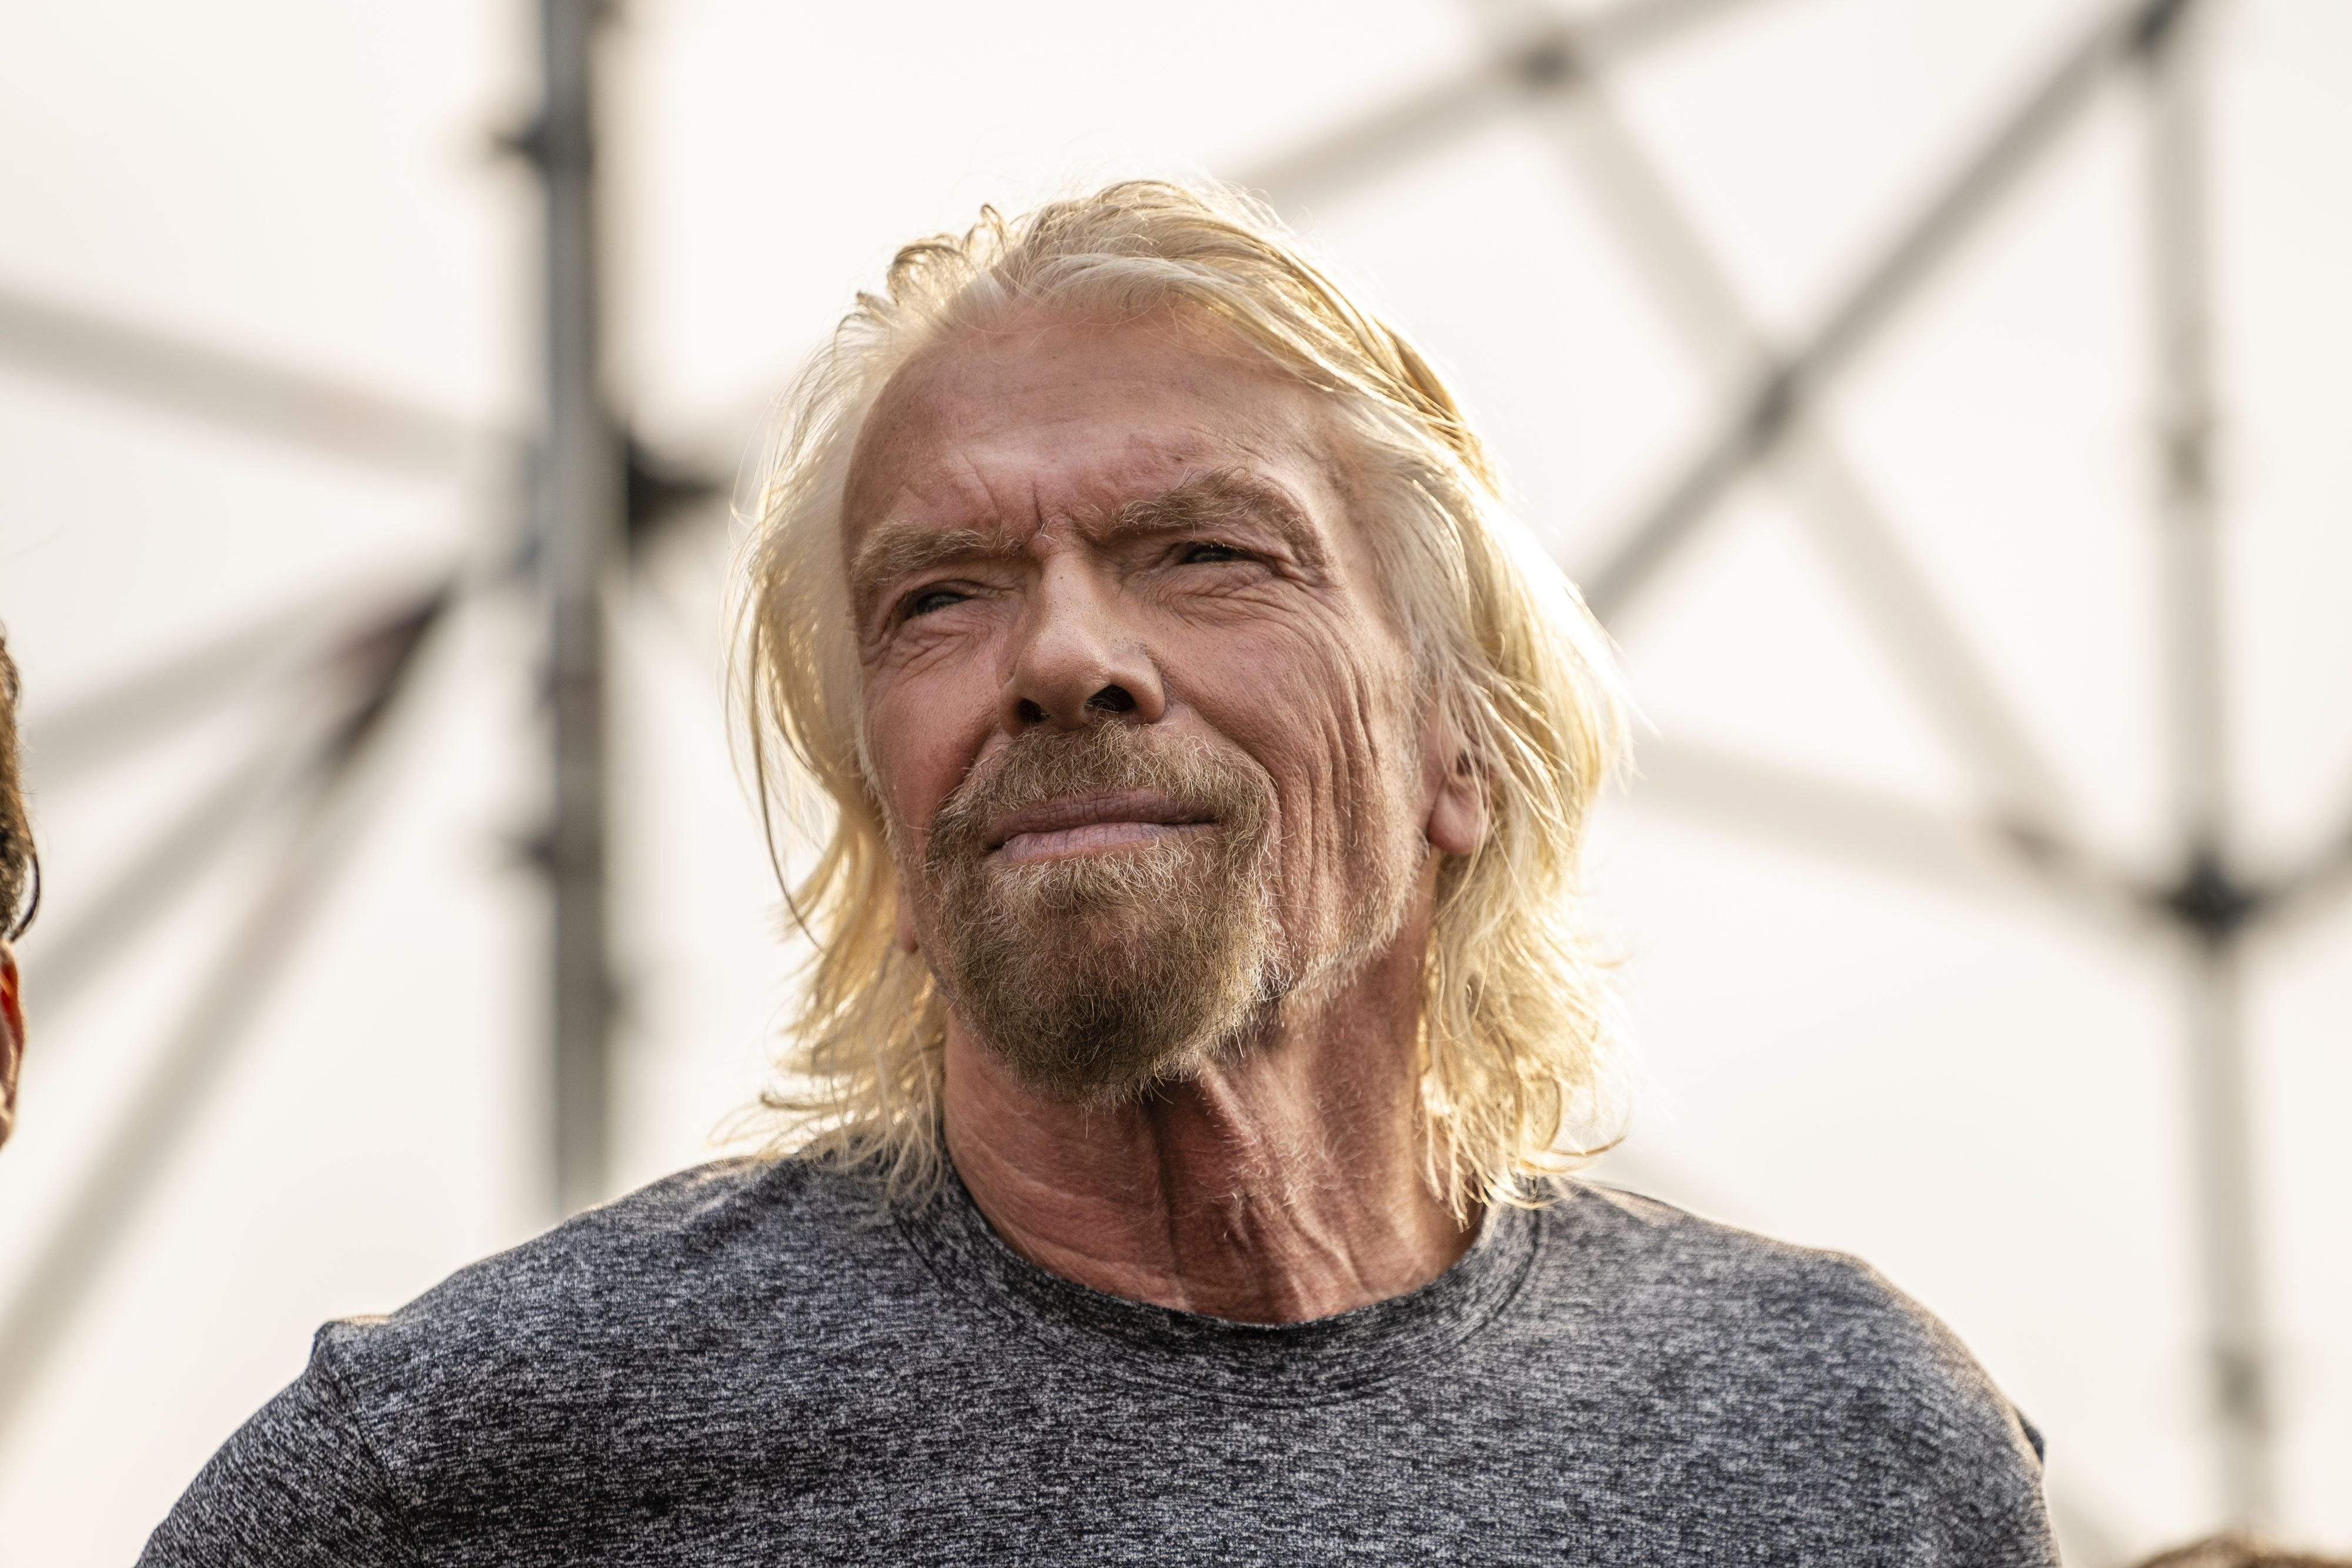 Richard Branson at a news conference on Friday, February 22, 2019 | Photo: Getty Images